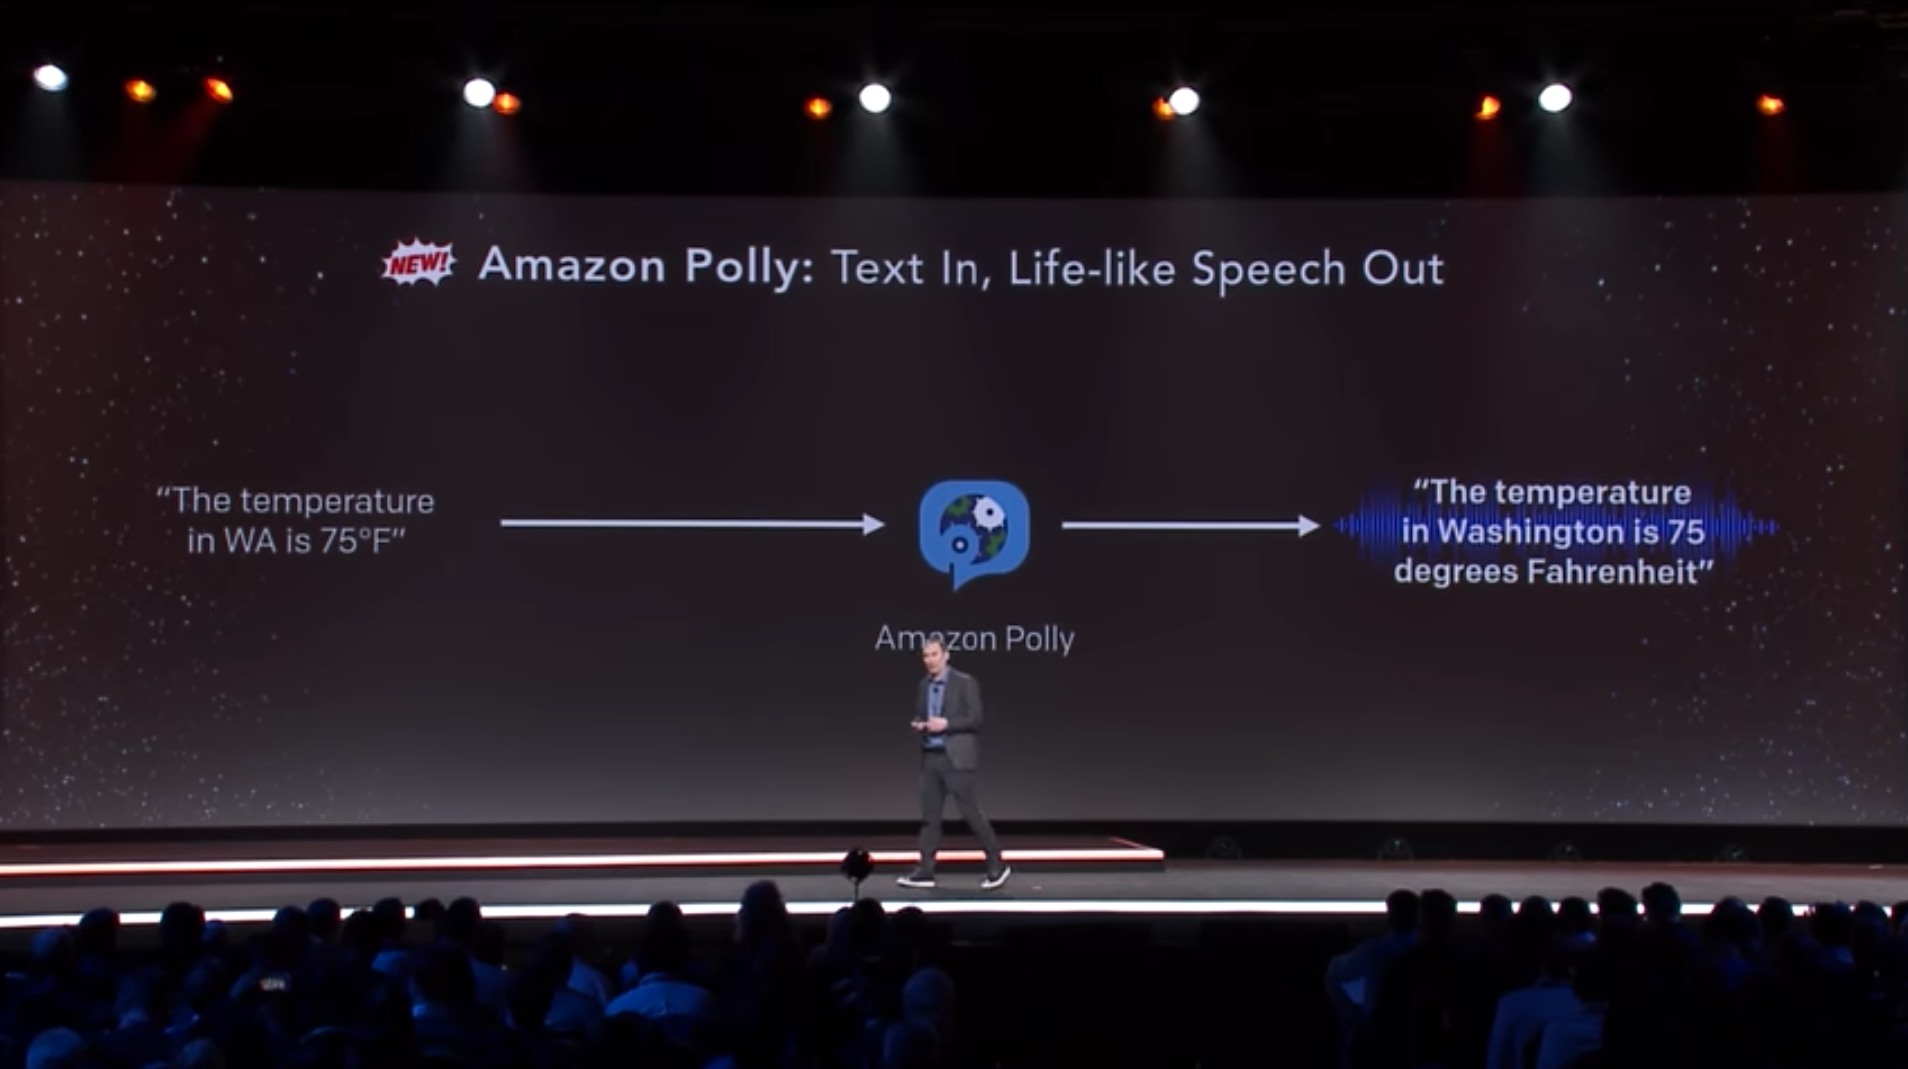 Getting Started with Amazon Polly using Node js - Taron